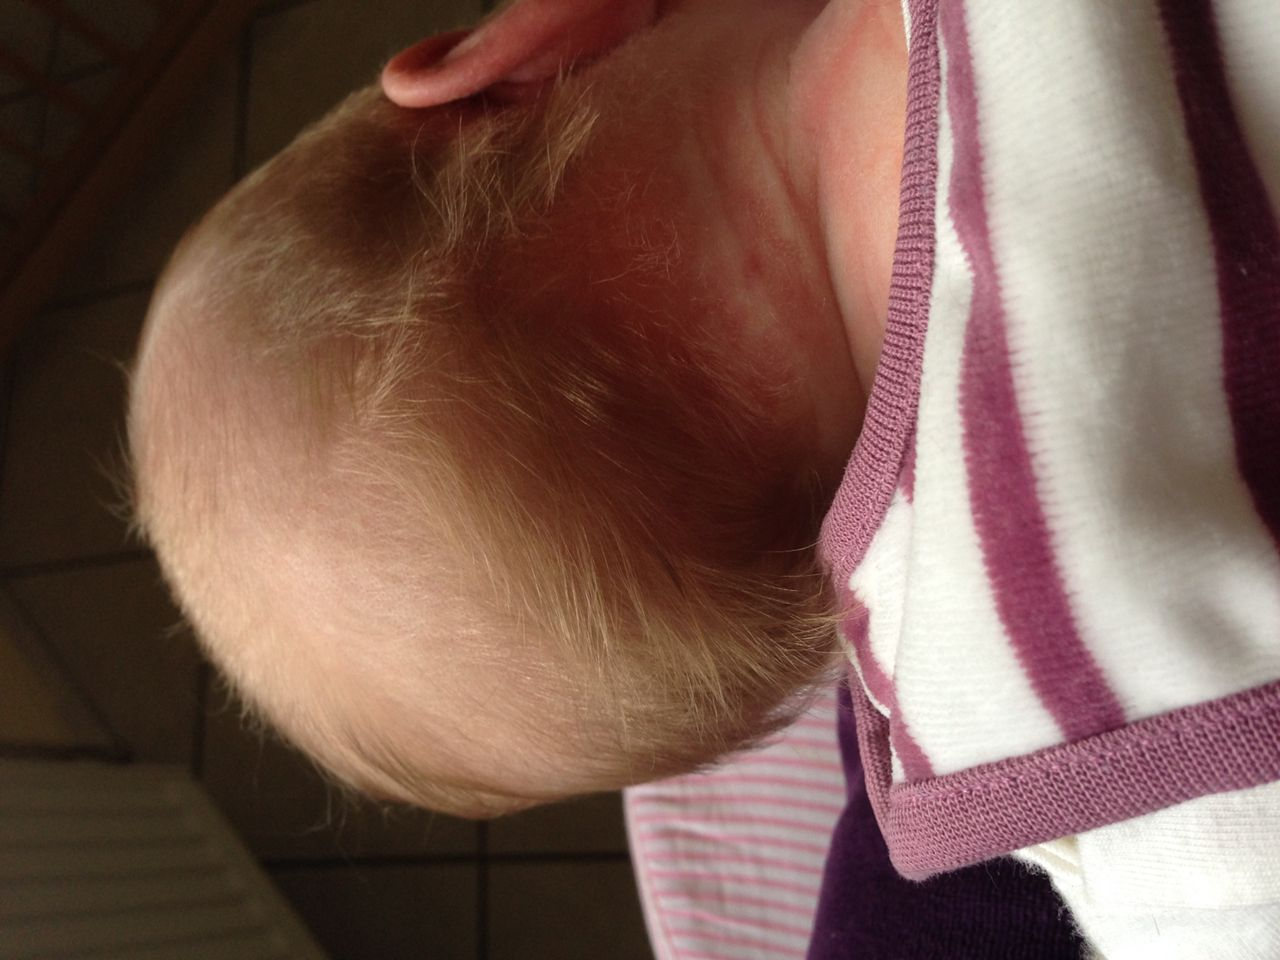 Baby braunrote haare